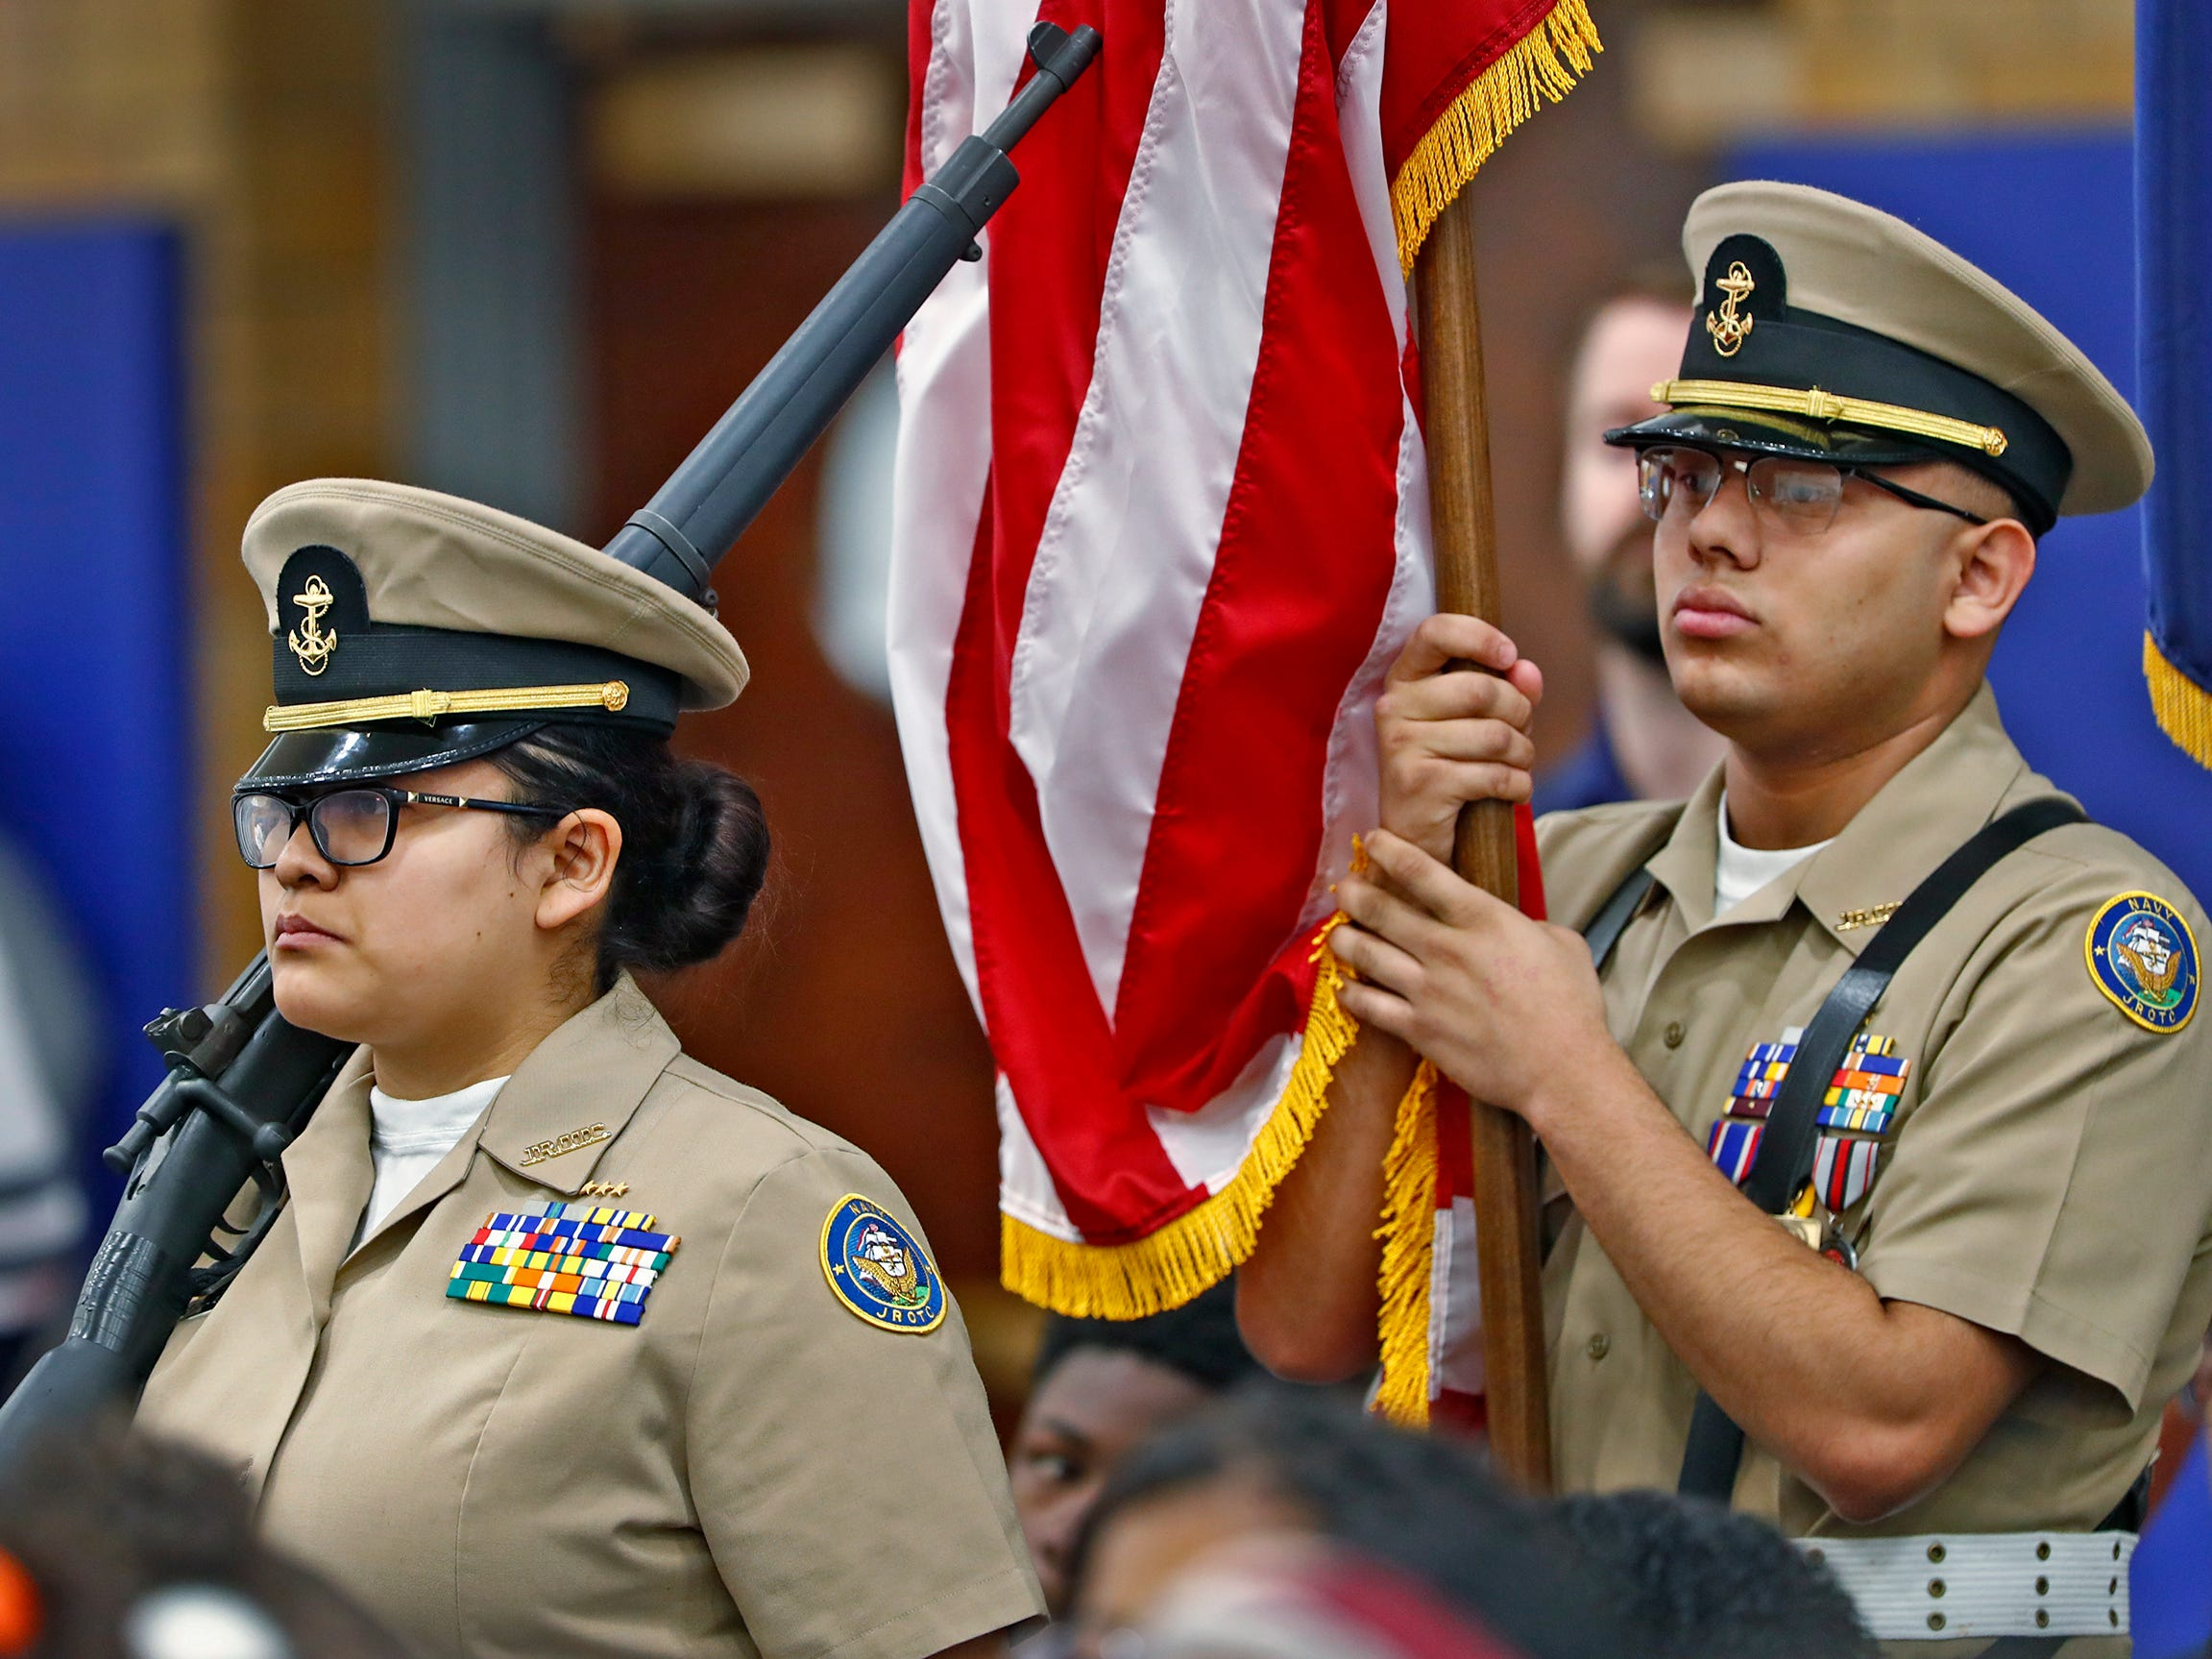 Members of the Pike High School's Junior Reserve Officer Training Corps Color Guard Post the Colors during the Pearl Harbor Day Remembrance at Riverside High School, Friday, Dec. 7, 2018.  The former Heslar Naval Armory used to host the event to remember those who died and to honor those who survived in the Dec. 7, 1941 Japanese attack on Pearl Harbor which plunged the United States into World War II.  The Tillman H. Harpole American Legion Post 249 presented the 20th annual service,